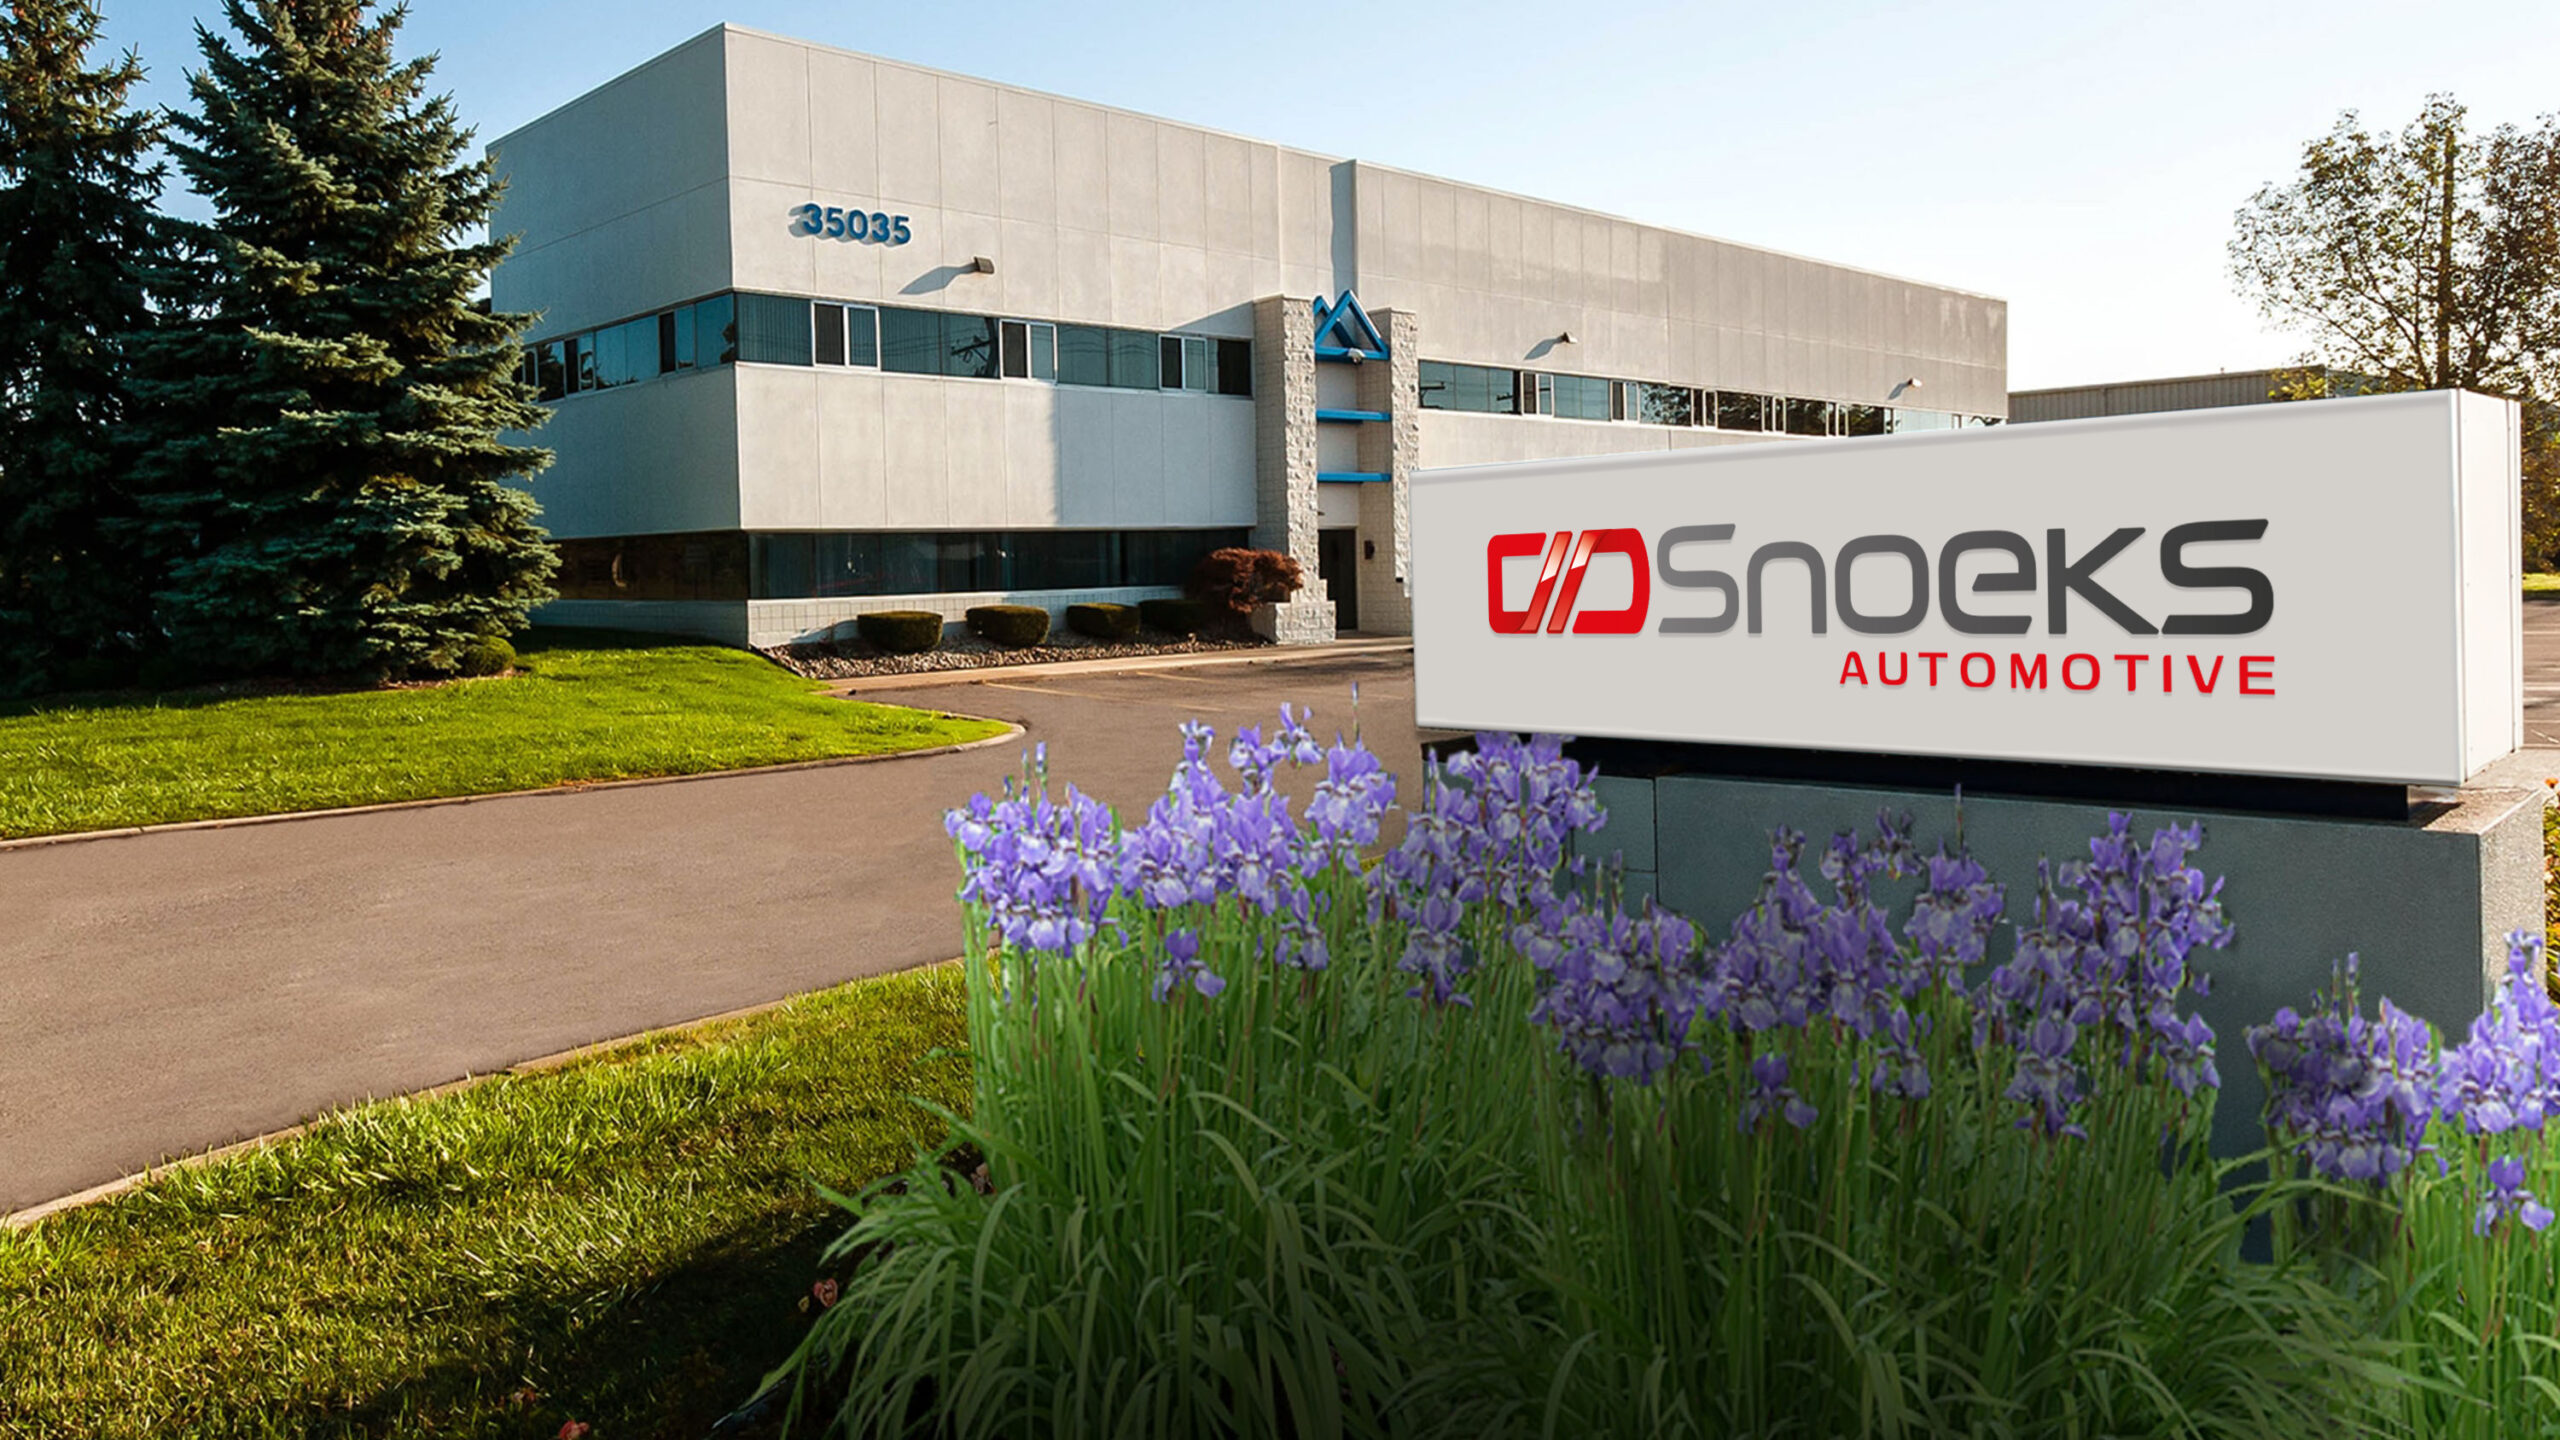 Snoeks Automotive North America Contact us